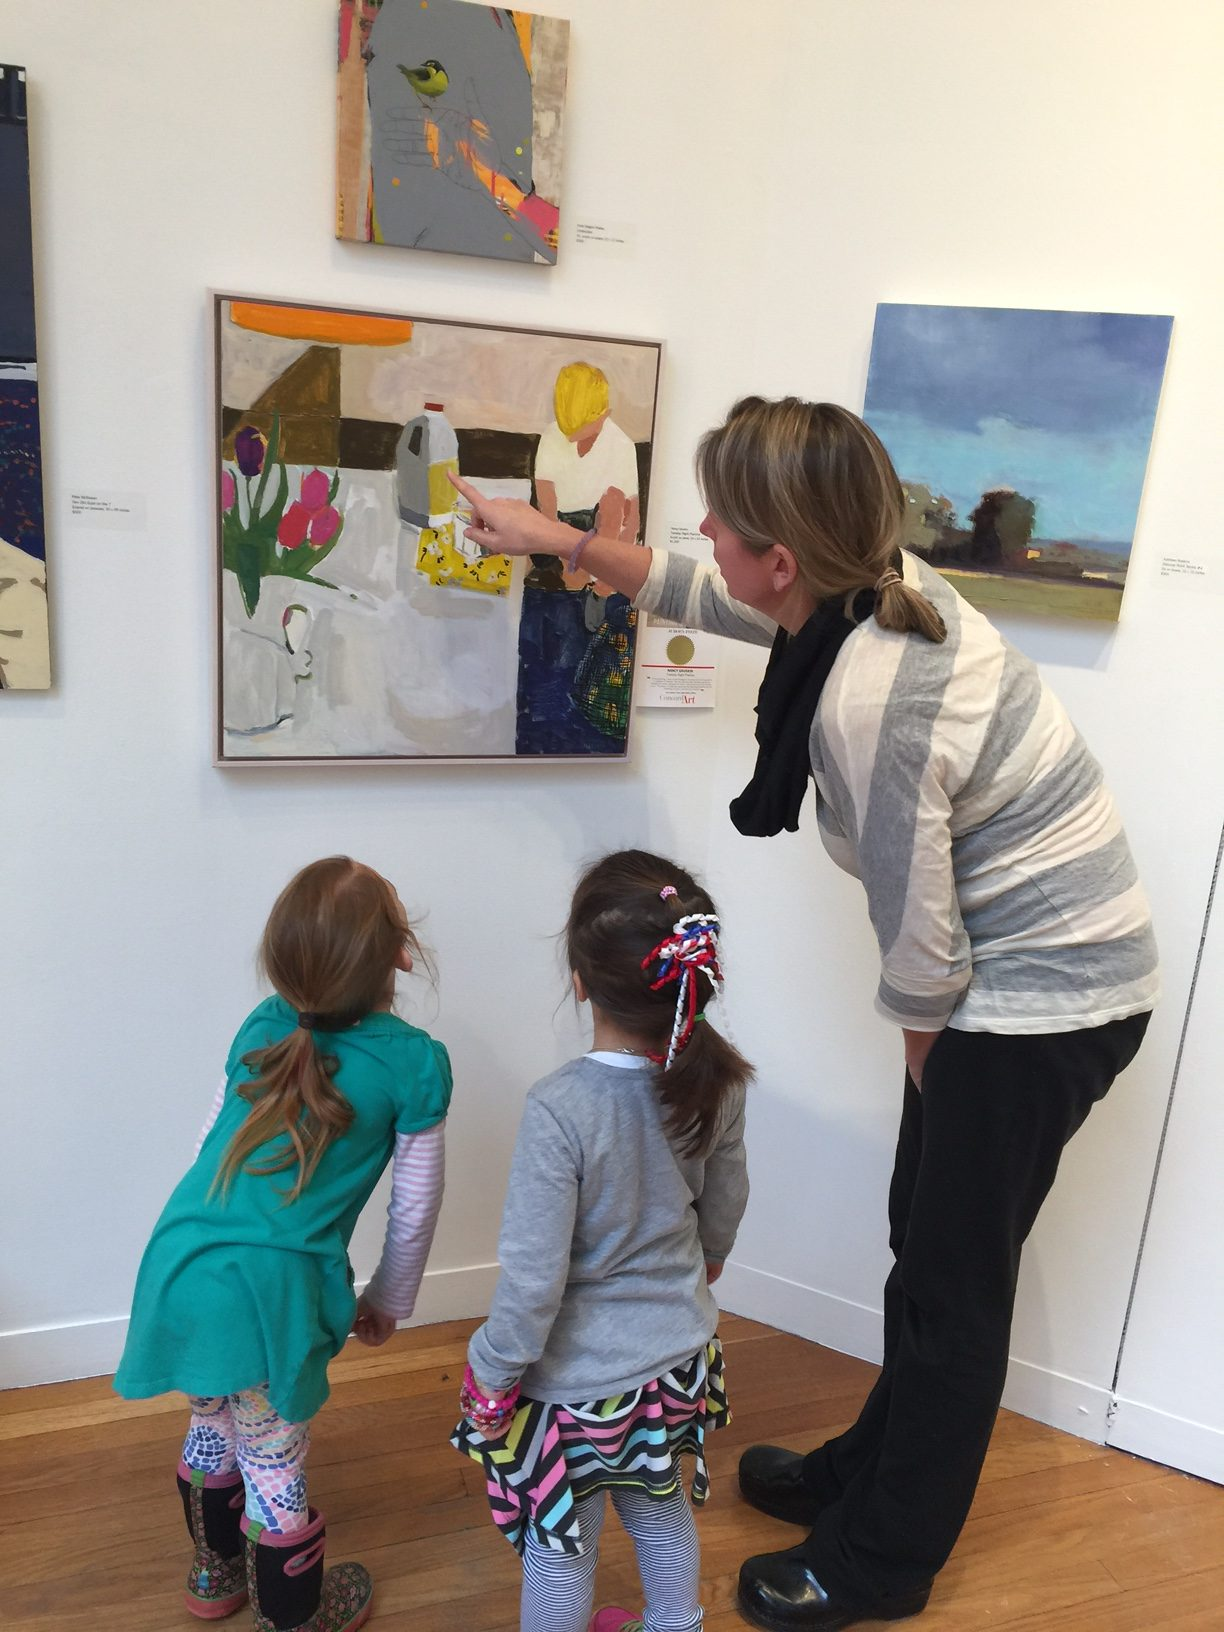 Concord Art hosts several exhibitions, and has a private collection with works by their founder and other artists significant to the organization.